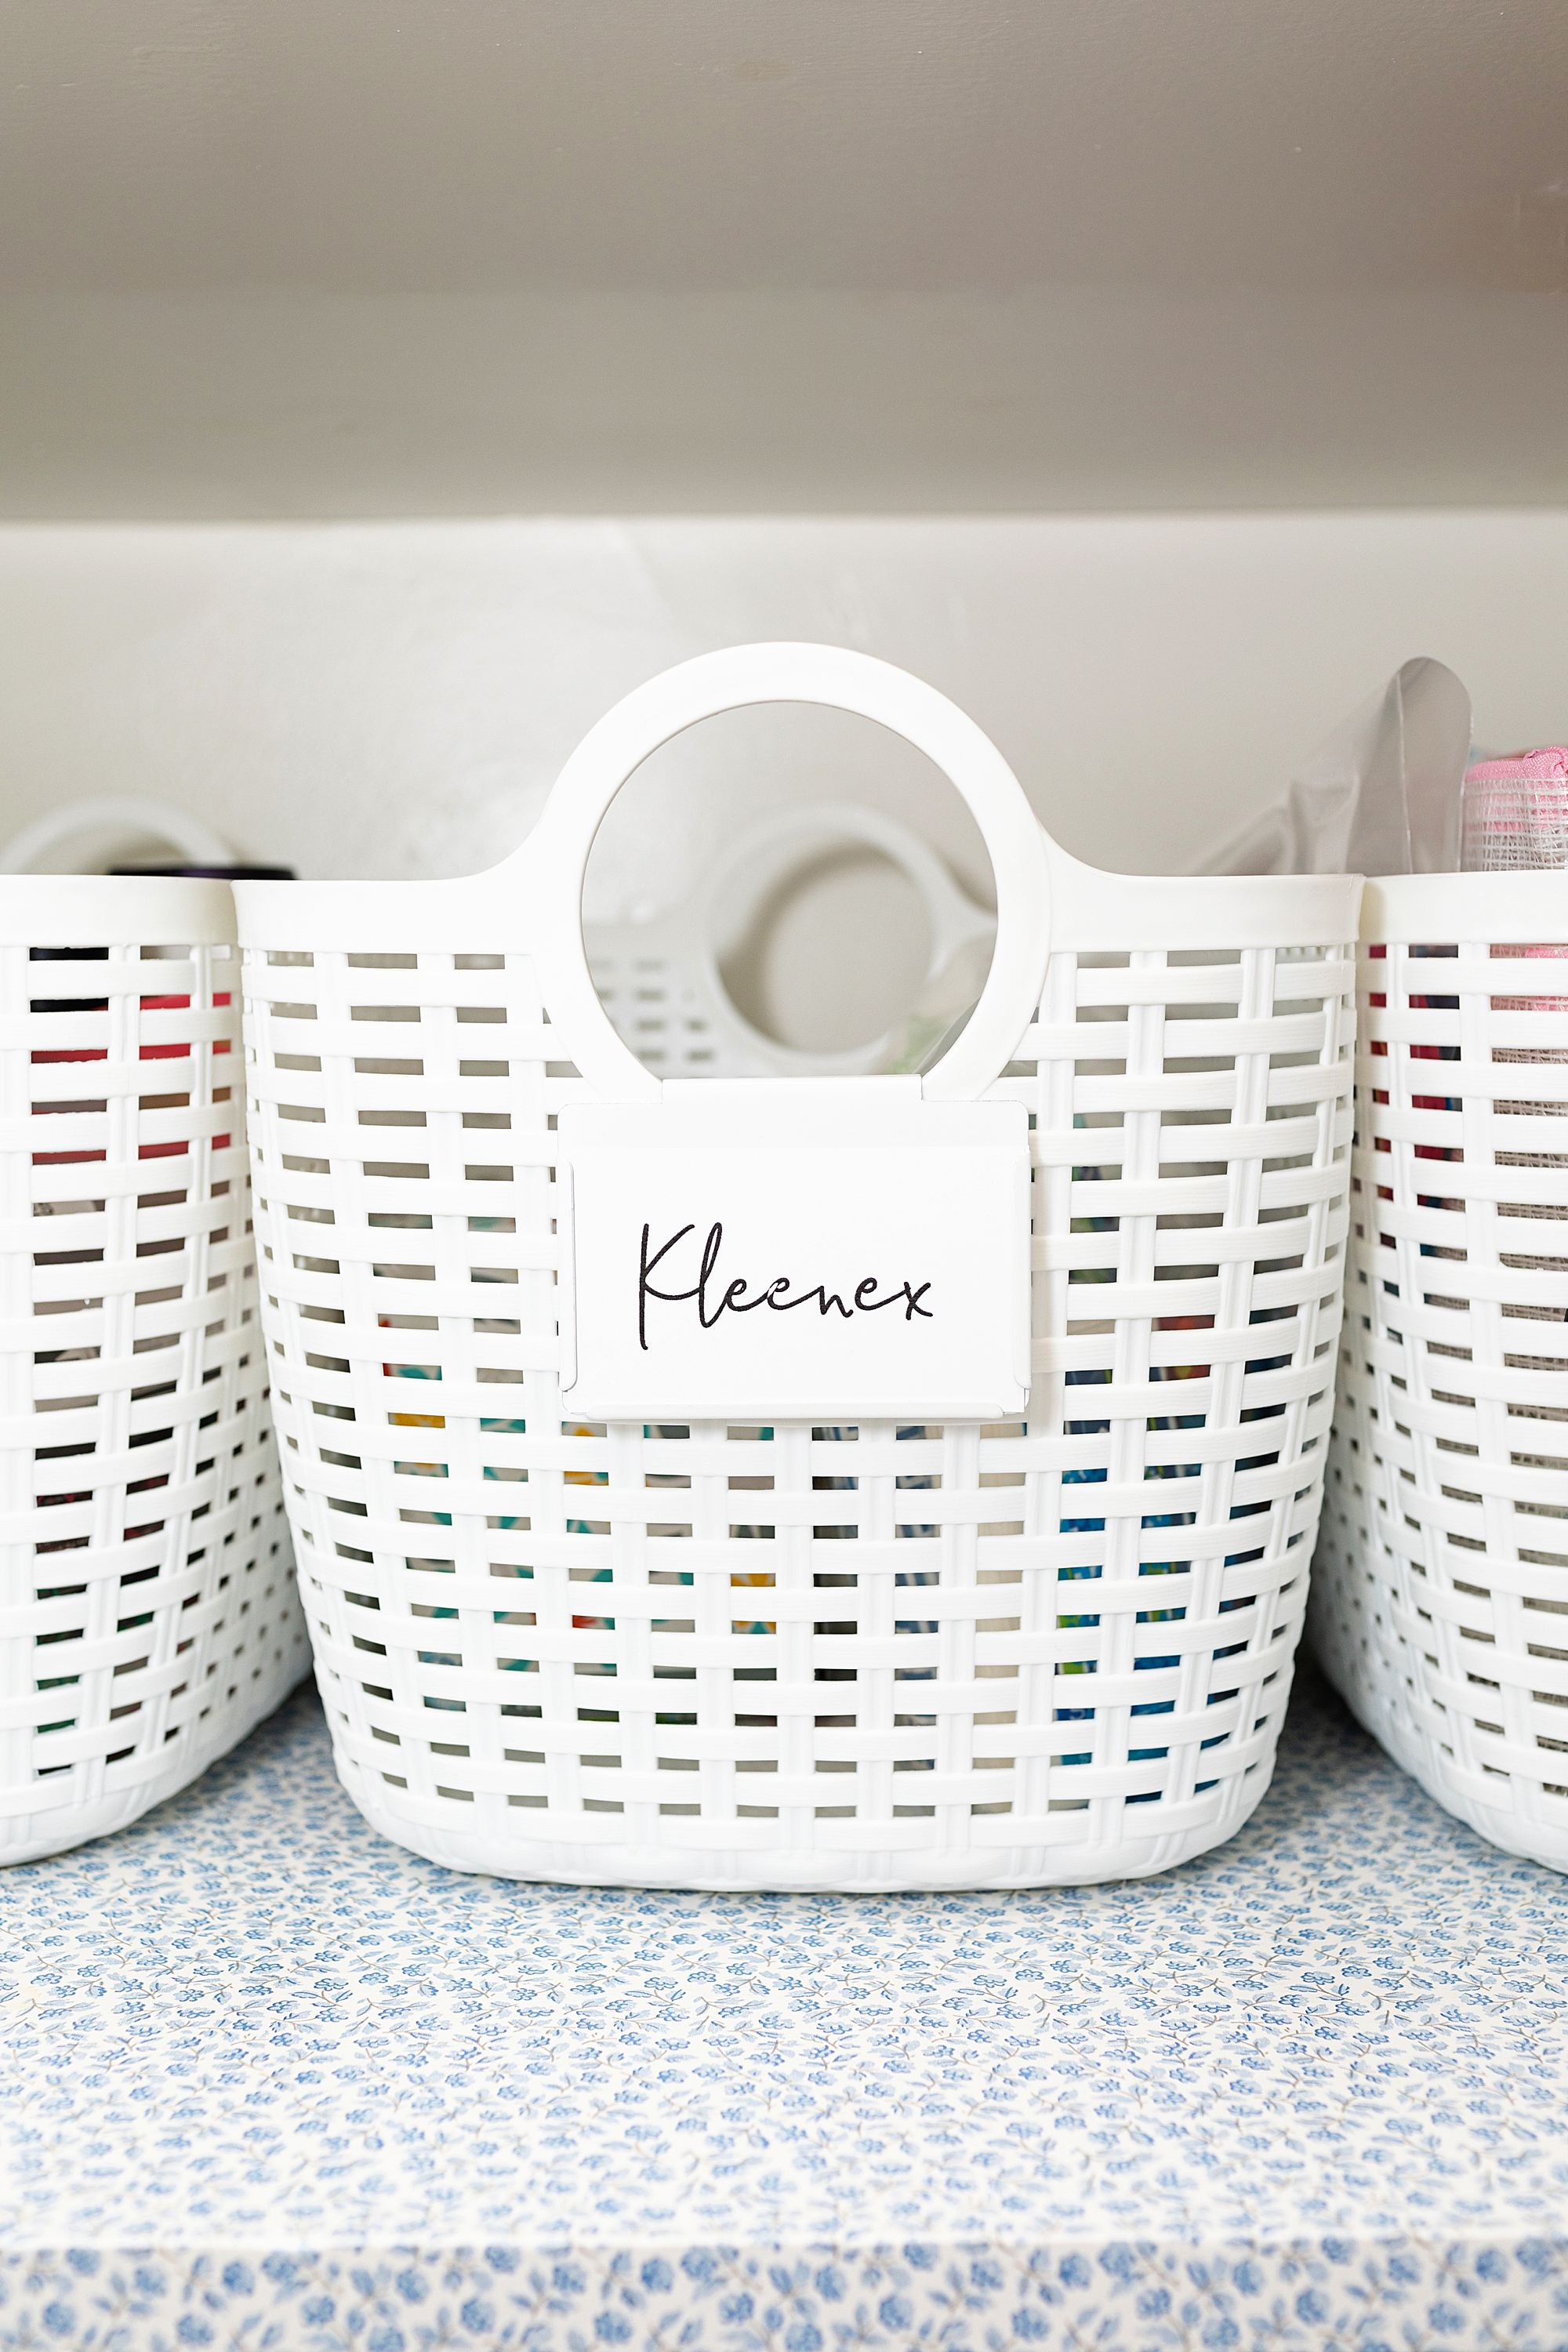 plastic bins for linen closet organization 99 cents store